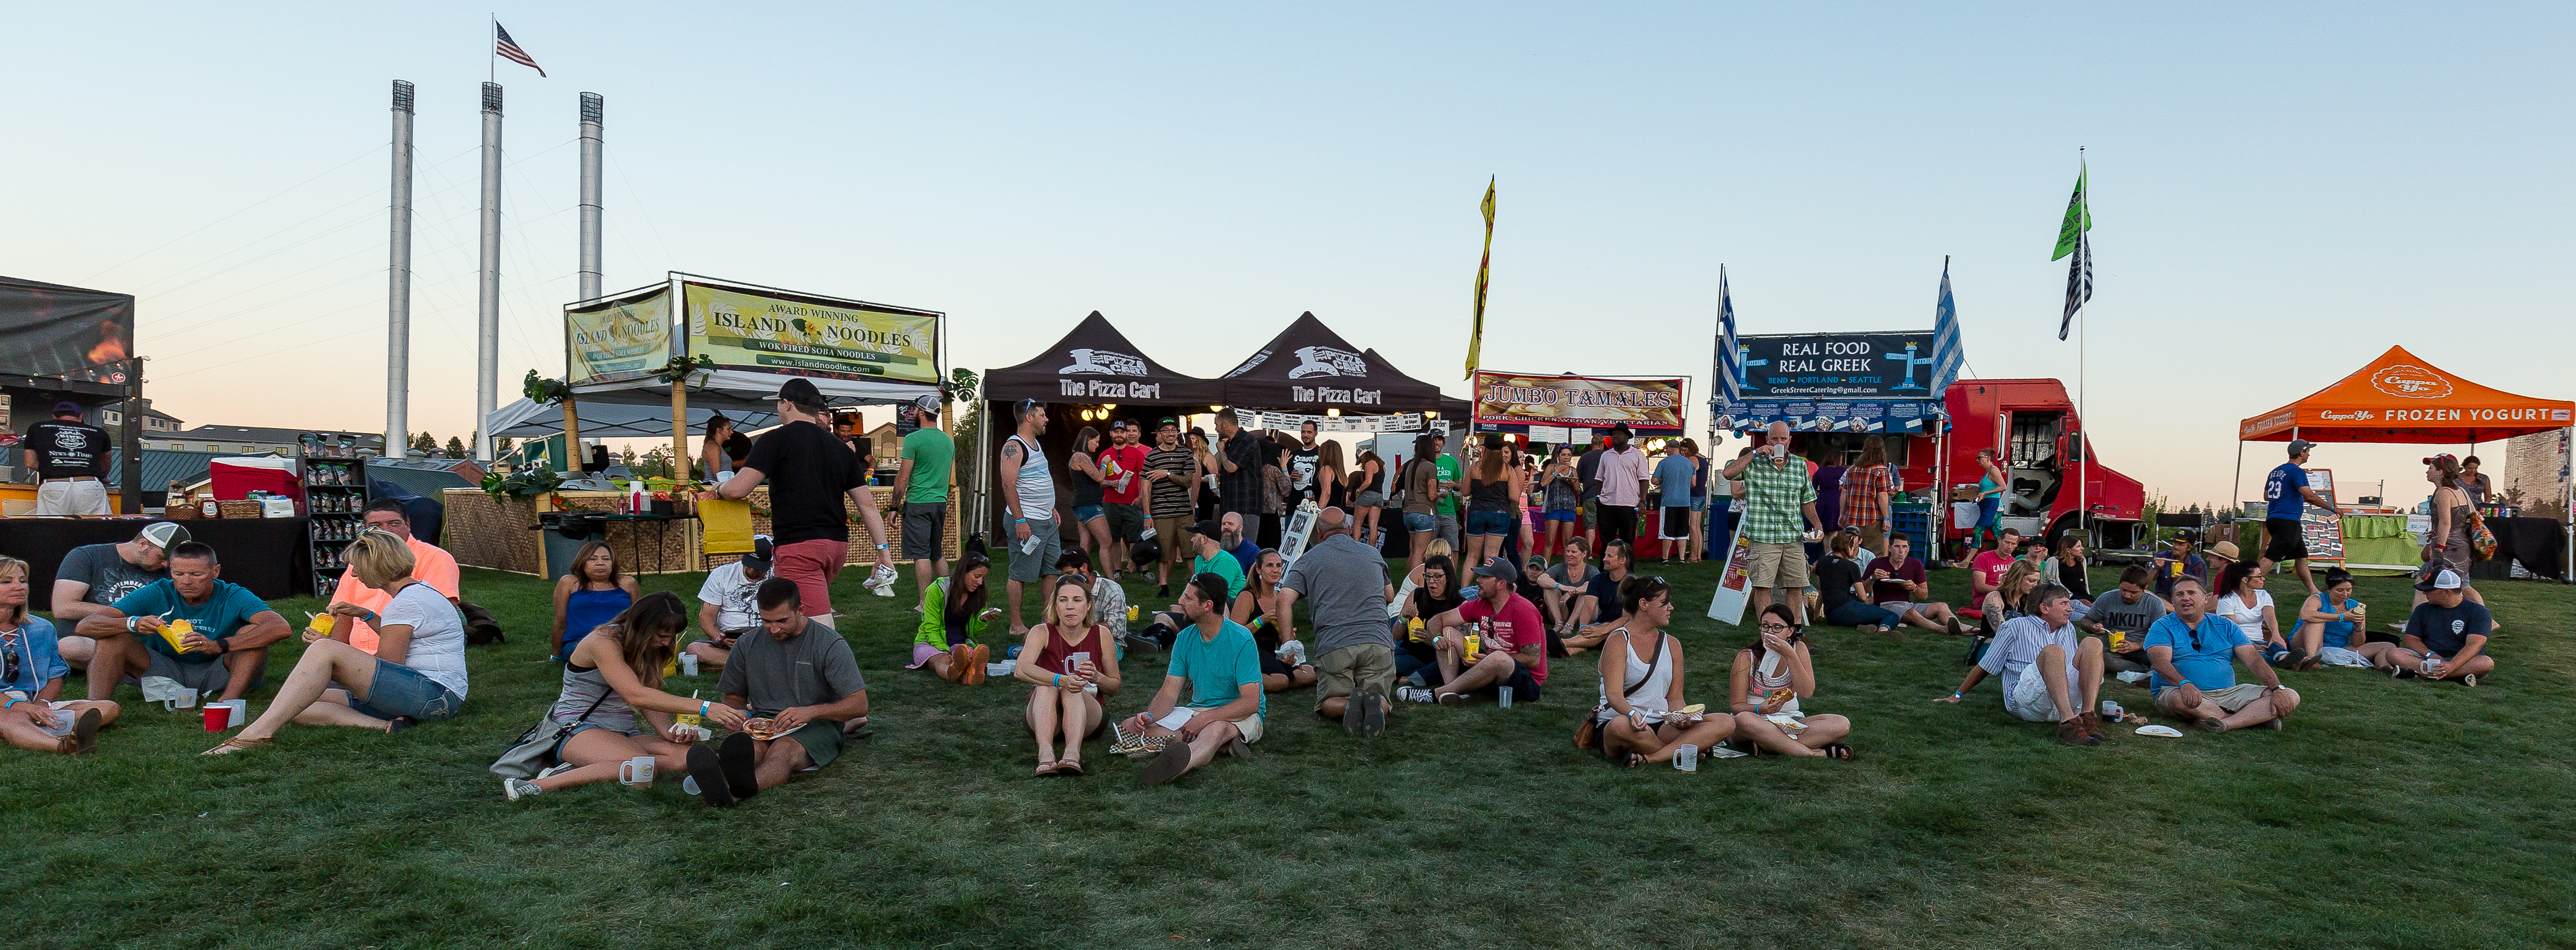 The hillside of food carts at the Bend Brewfest inside Les Schwab Amphitheater. (image courtesy of Bend Brewfest)